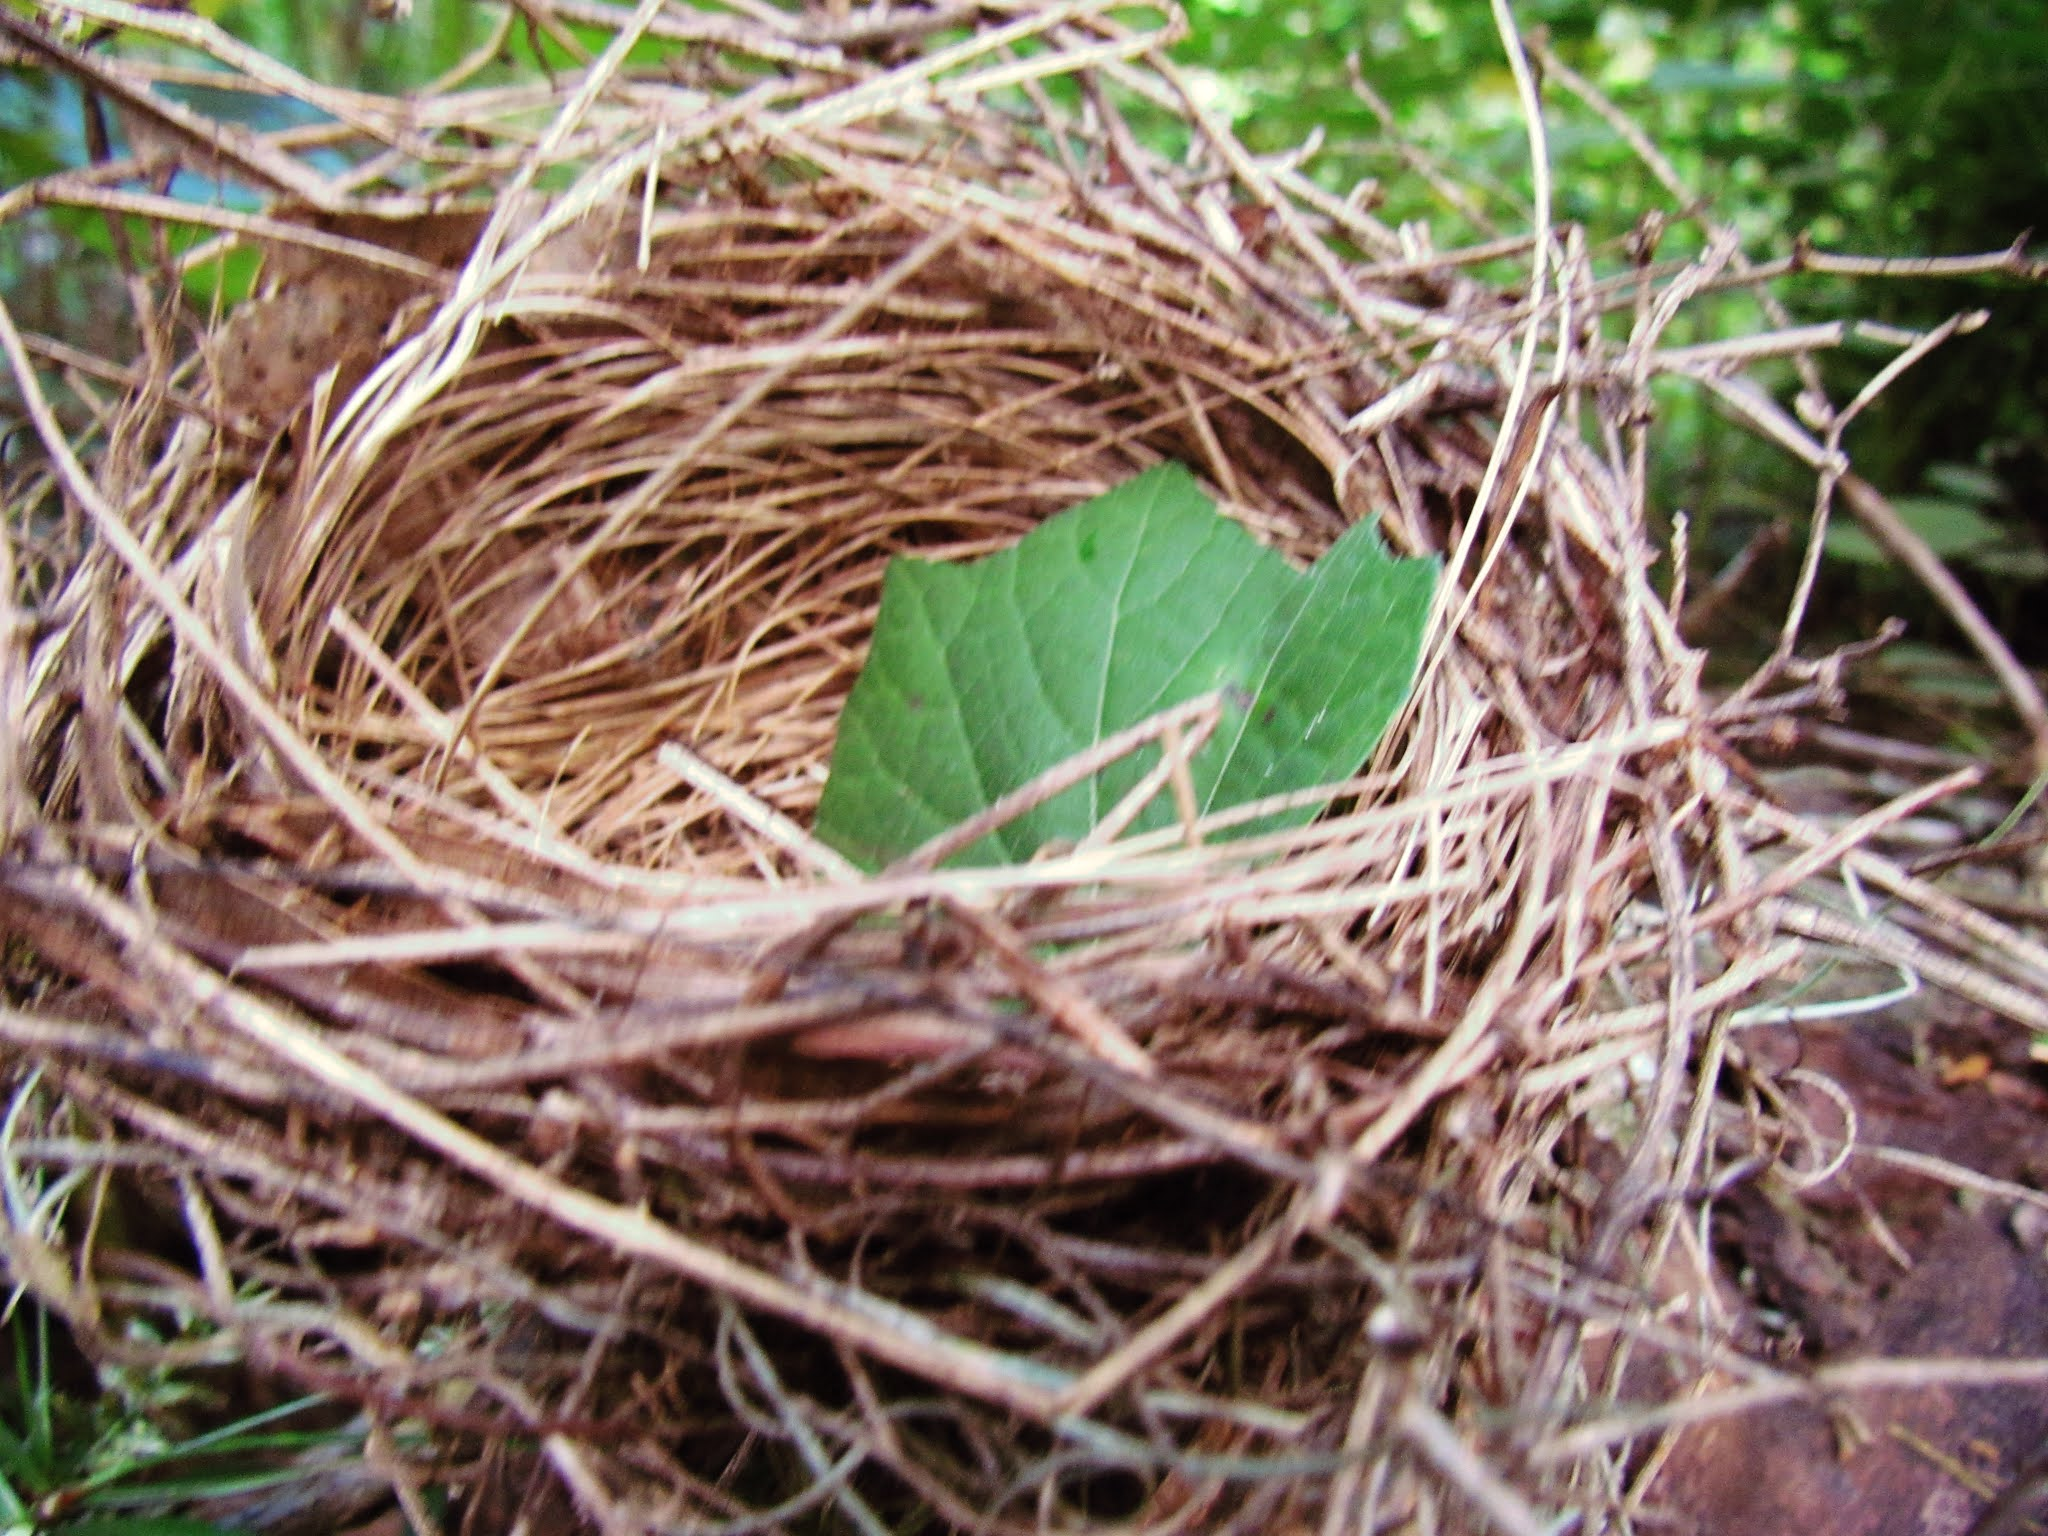 A naturally found bird's nest with a pretty green leaf in the woodlands of Florida's wildlife preserves